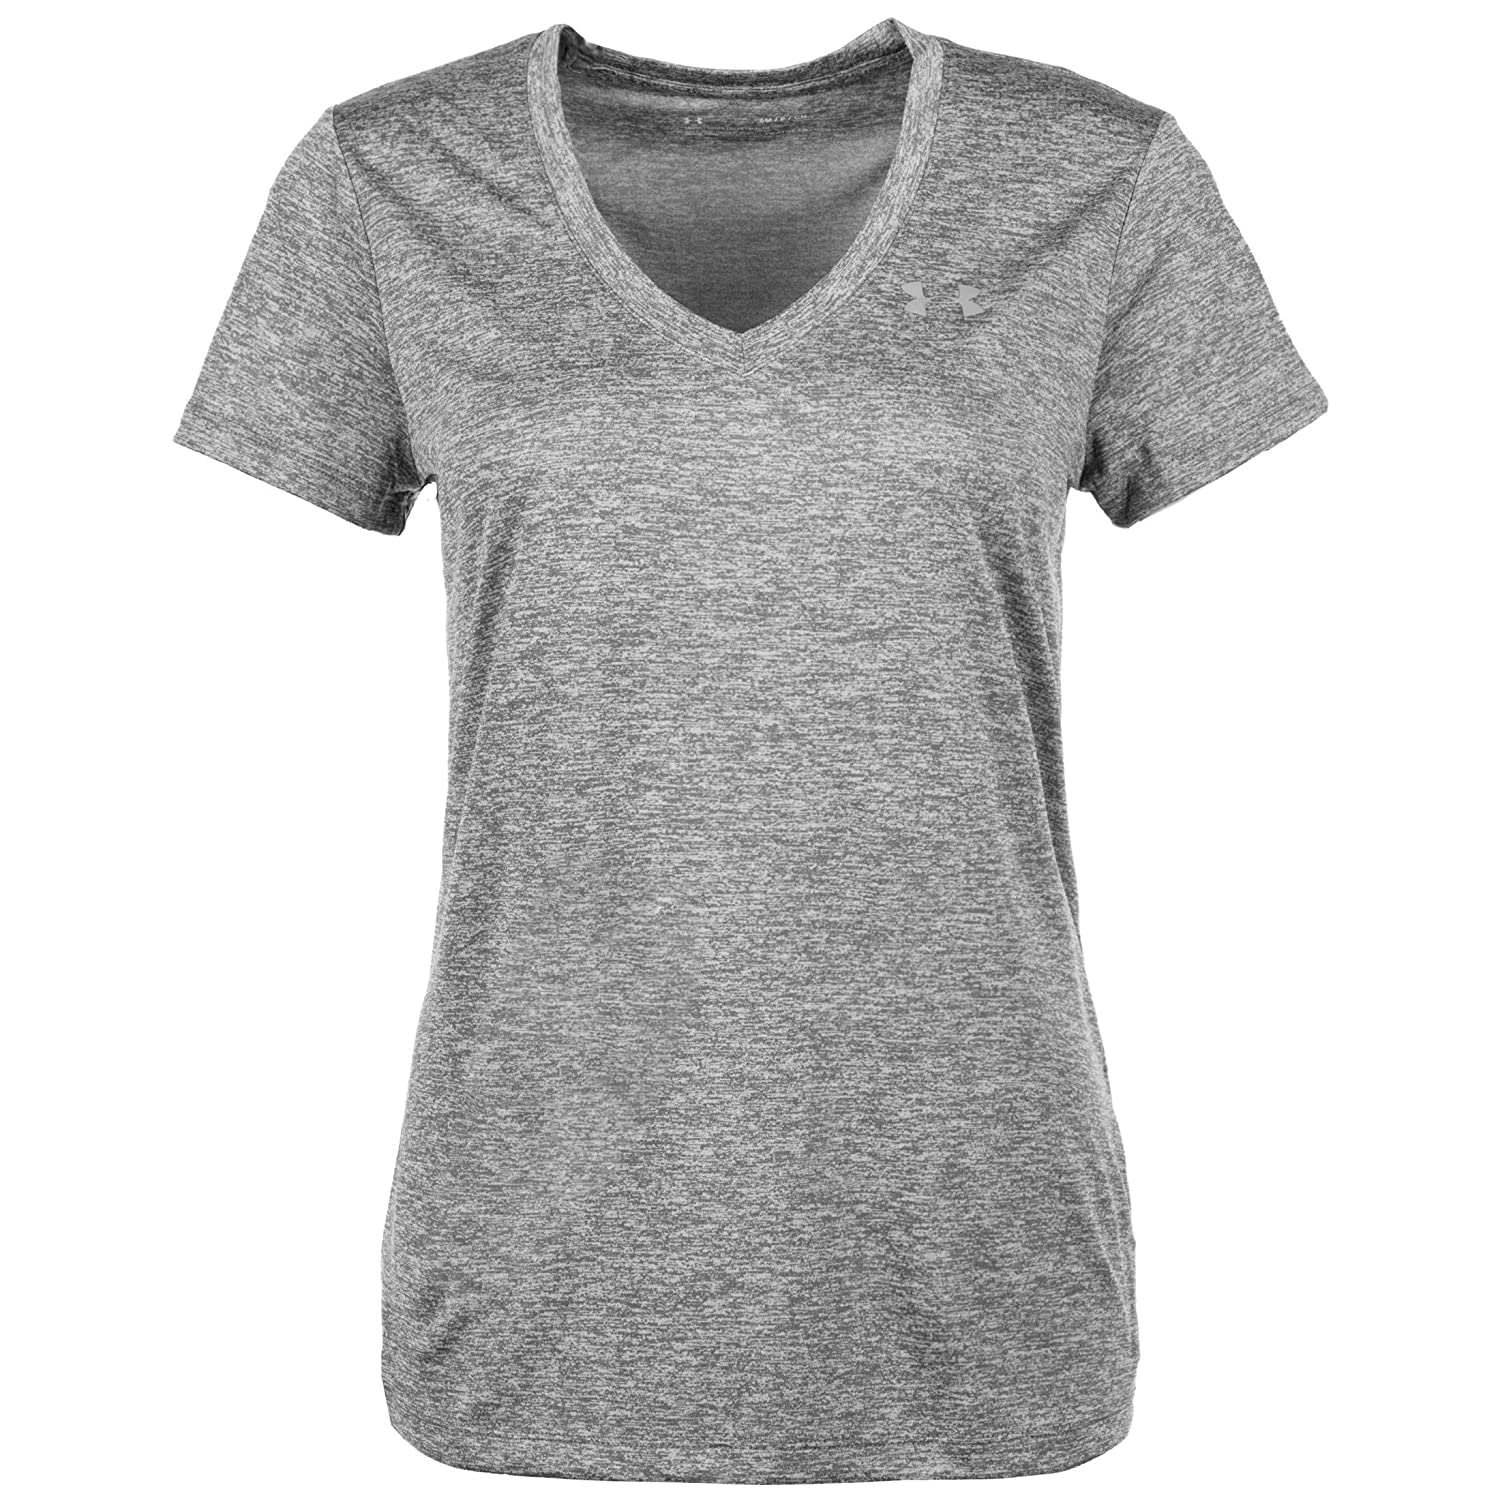 705c56cb3a Under Armour Tech SSV Twist Gym T Shirt, Ladies T Shirt Made of 4-Way  Stretch Fabric, Ultra-light & Breathable Running Apparel